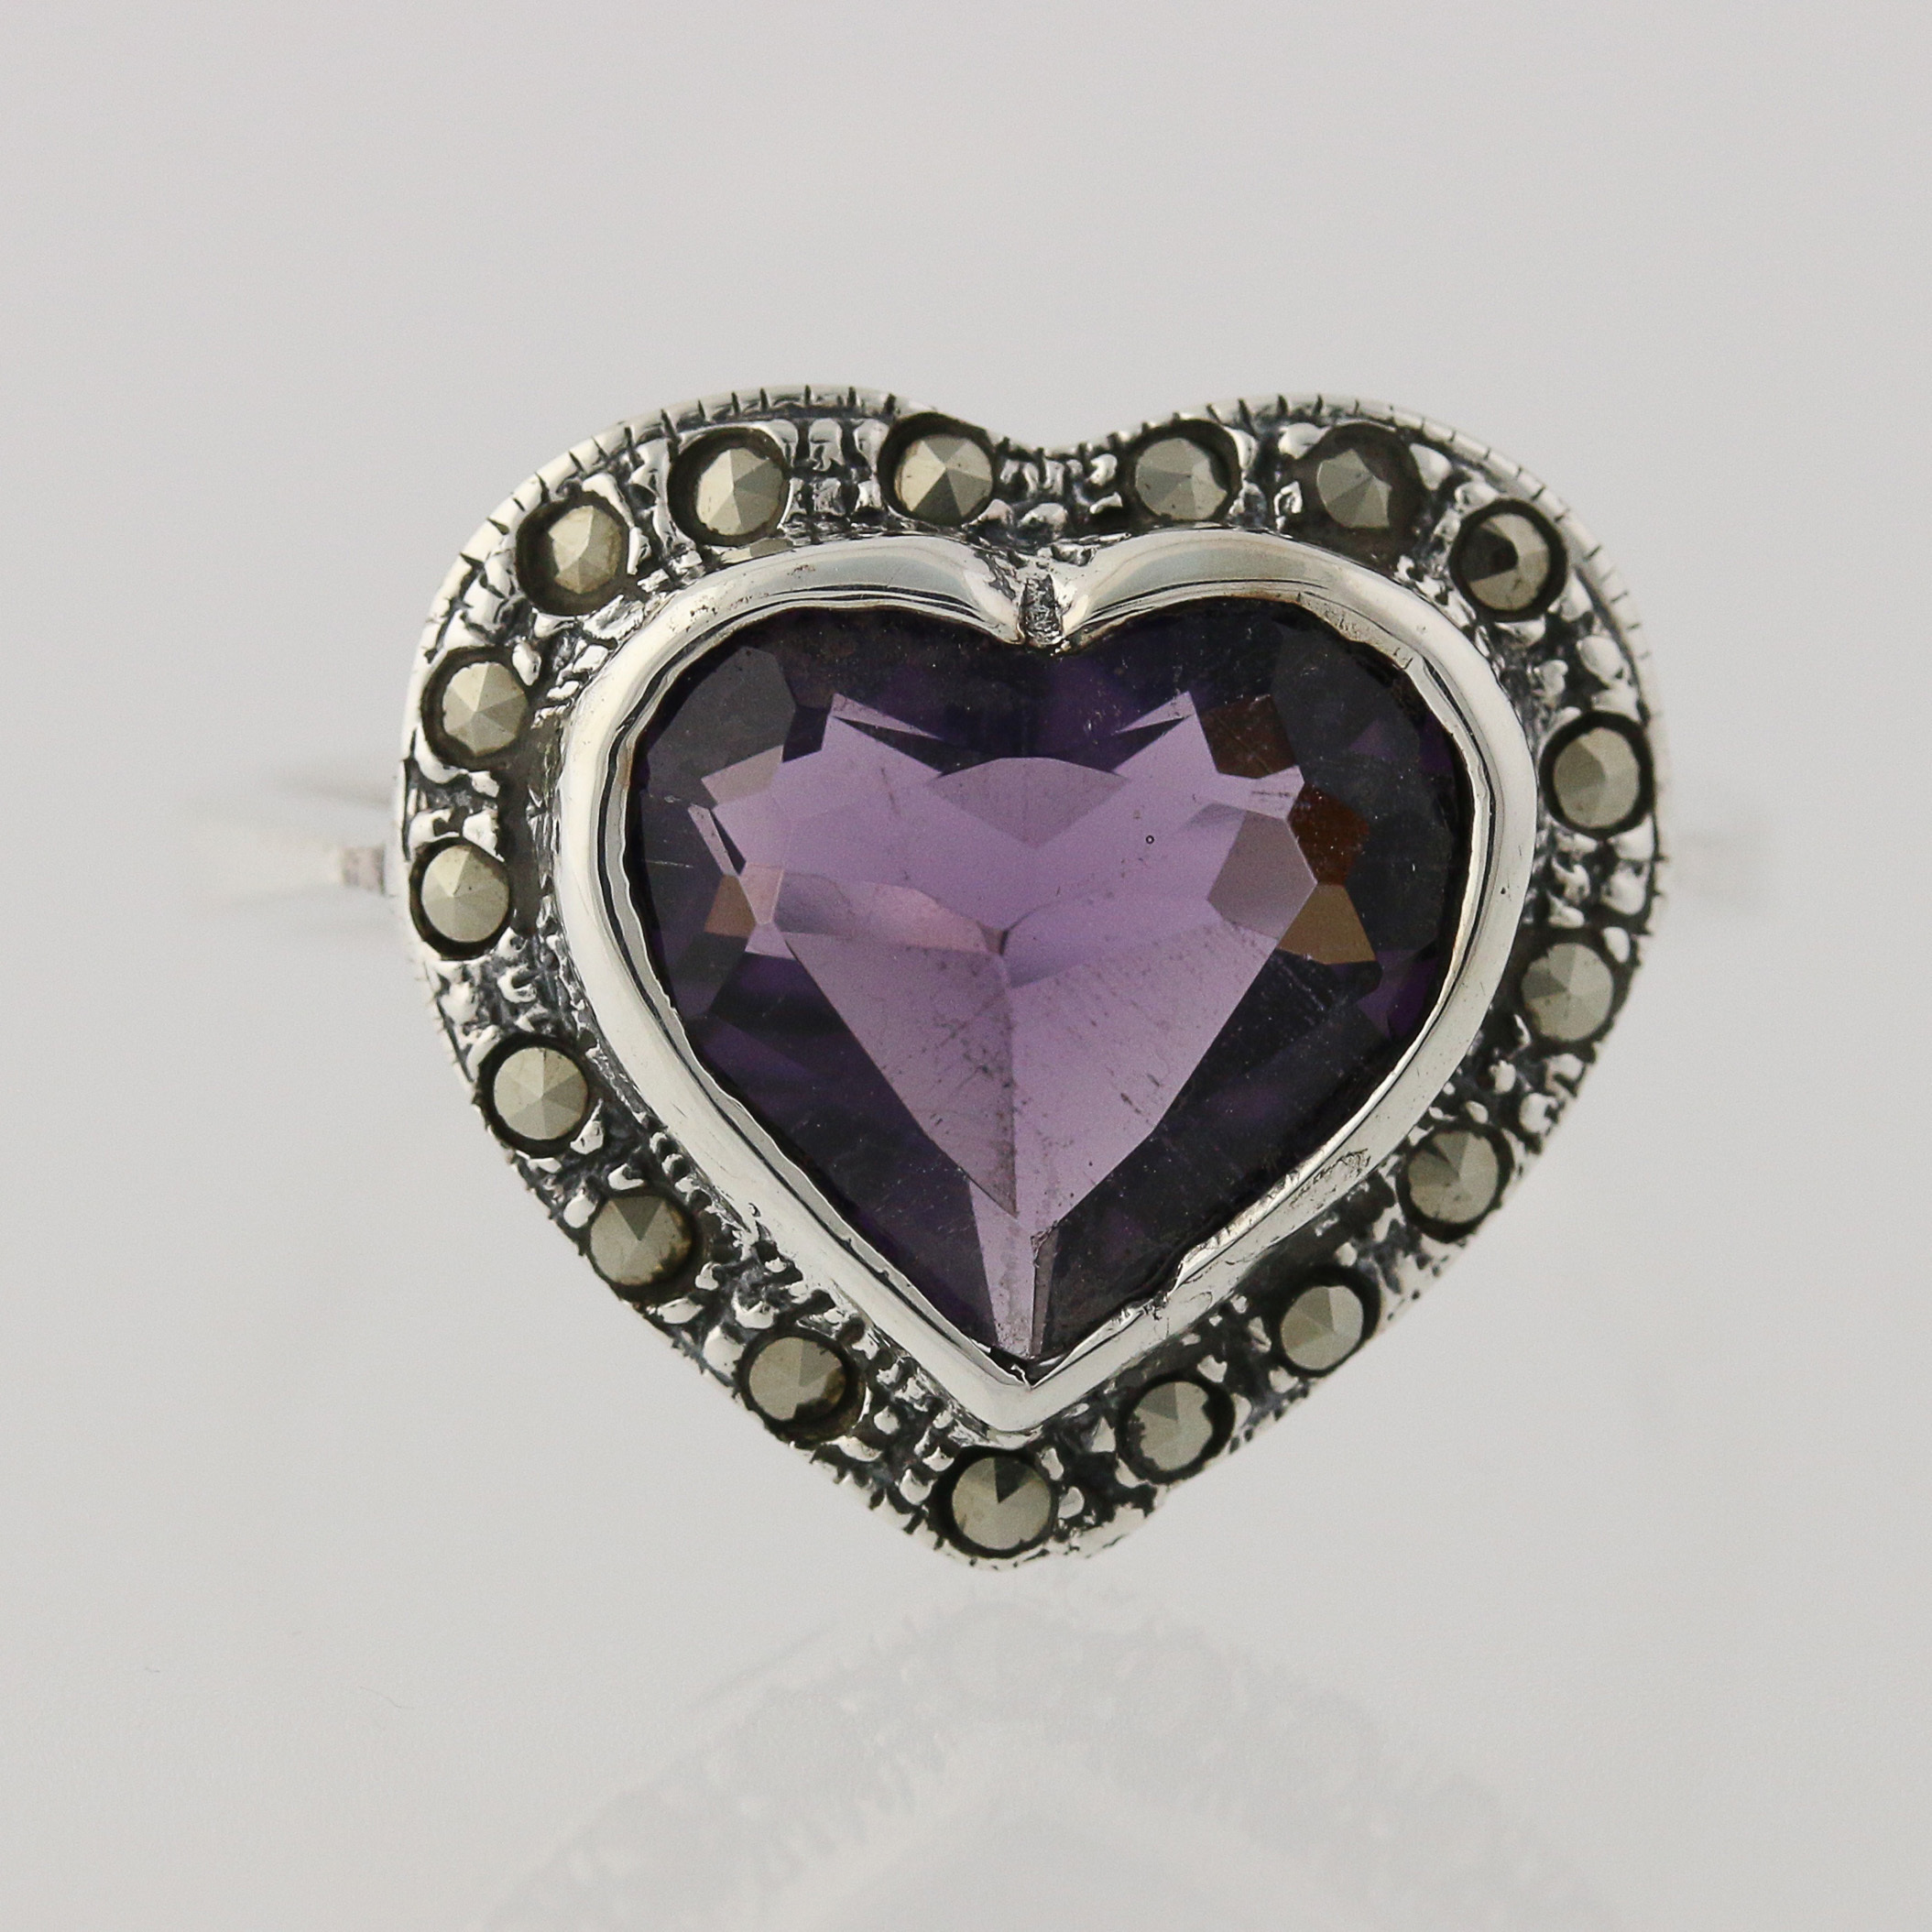 new simulated amethyst heart ring sterling silver. Black Bedroom Furniture Sets. Home Design Ideas